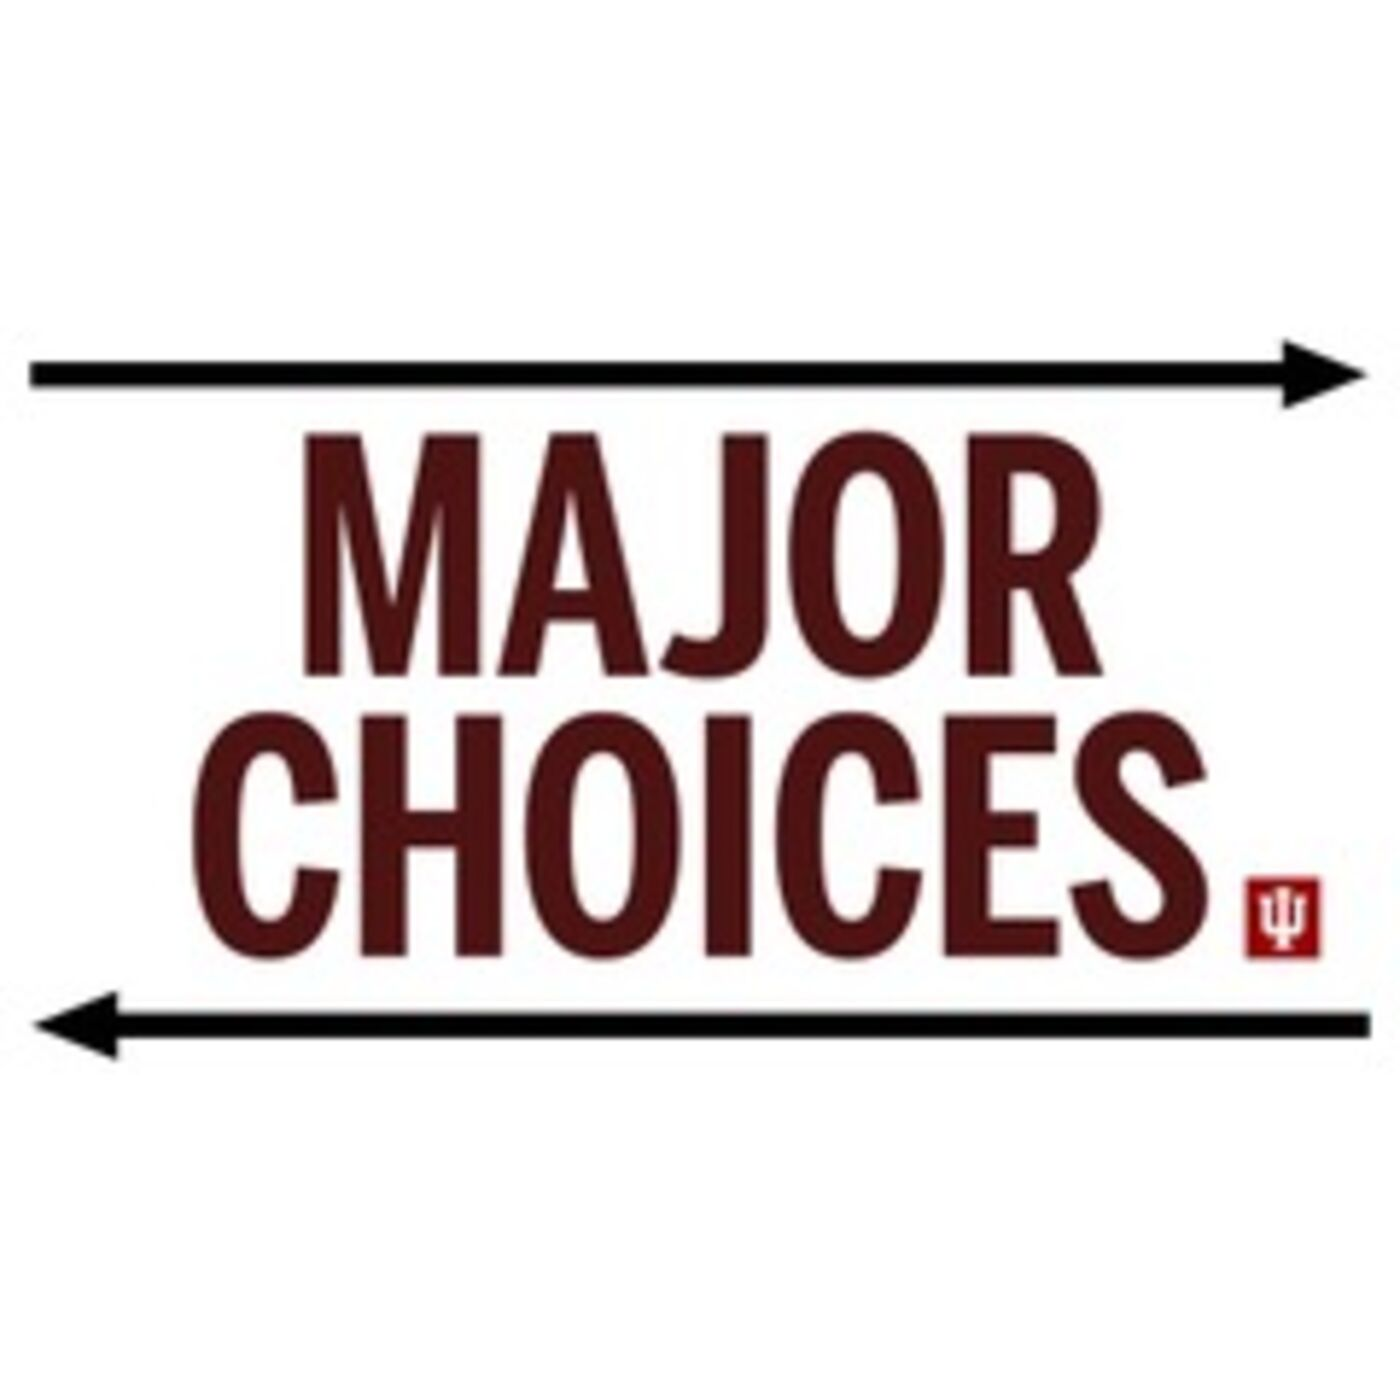 Trailer - Major Choices is coming in 2020!